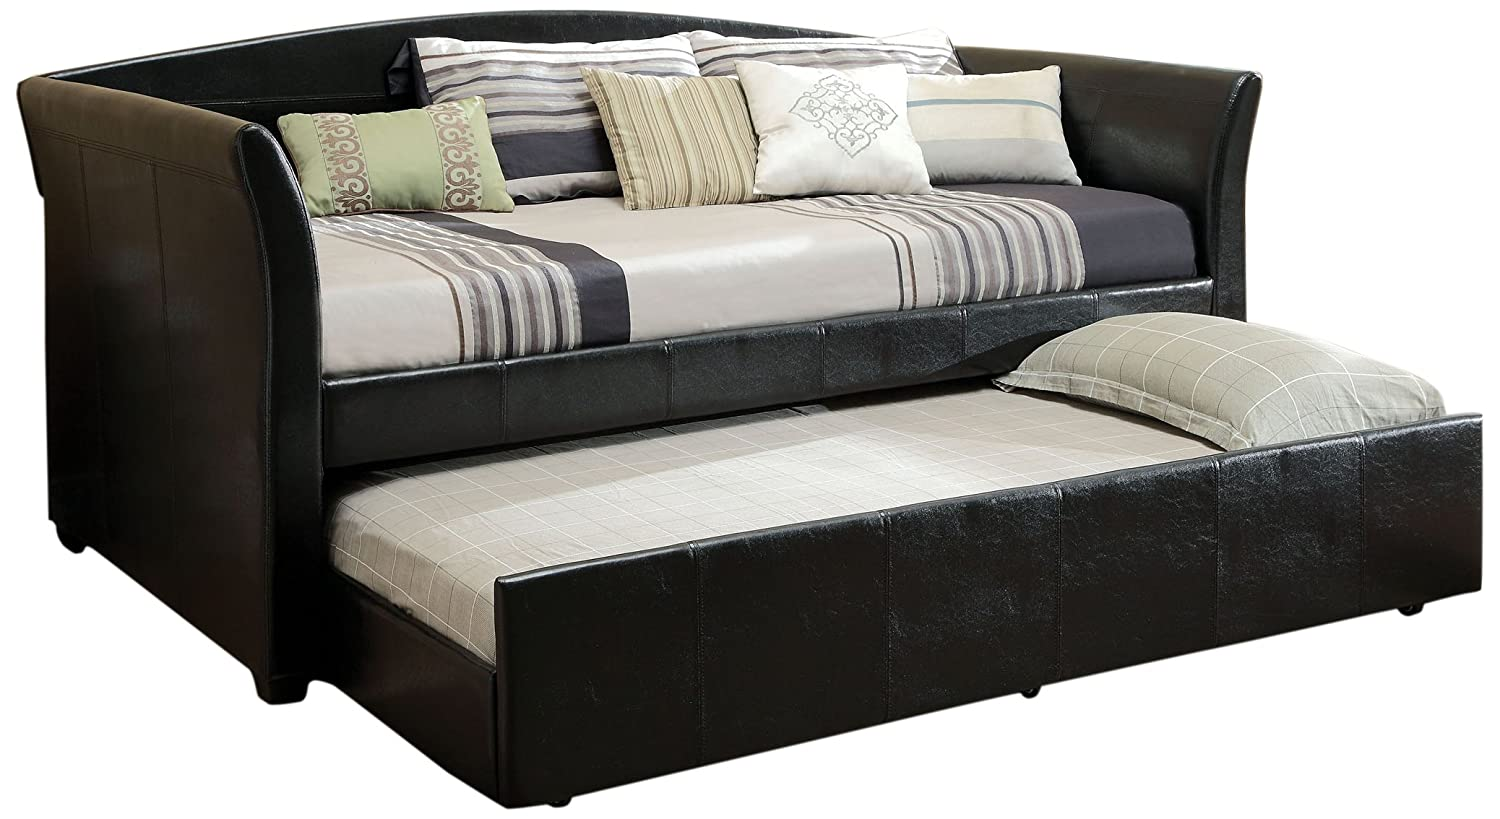 Amazon.com: Furniture of America Elliss Leatherette Upholstered Daybed with Twin  Trundle, Black: Kitchen & Dining - Amazon.com: Furniture Of America Elliss Leatherette Upholstered